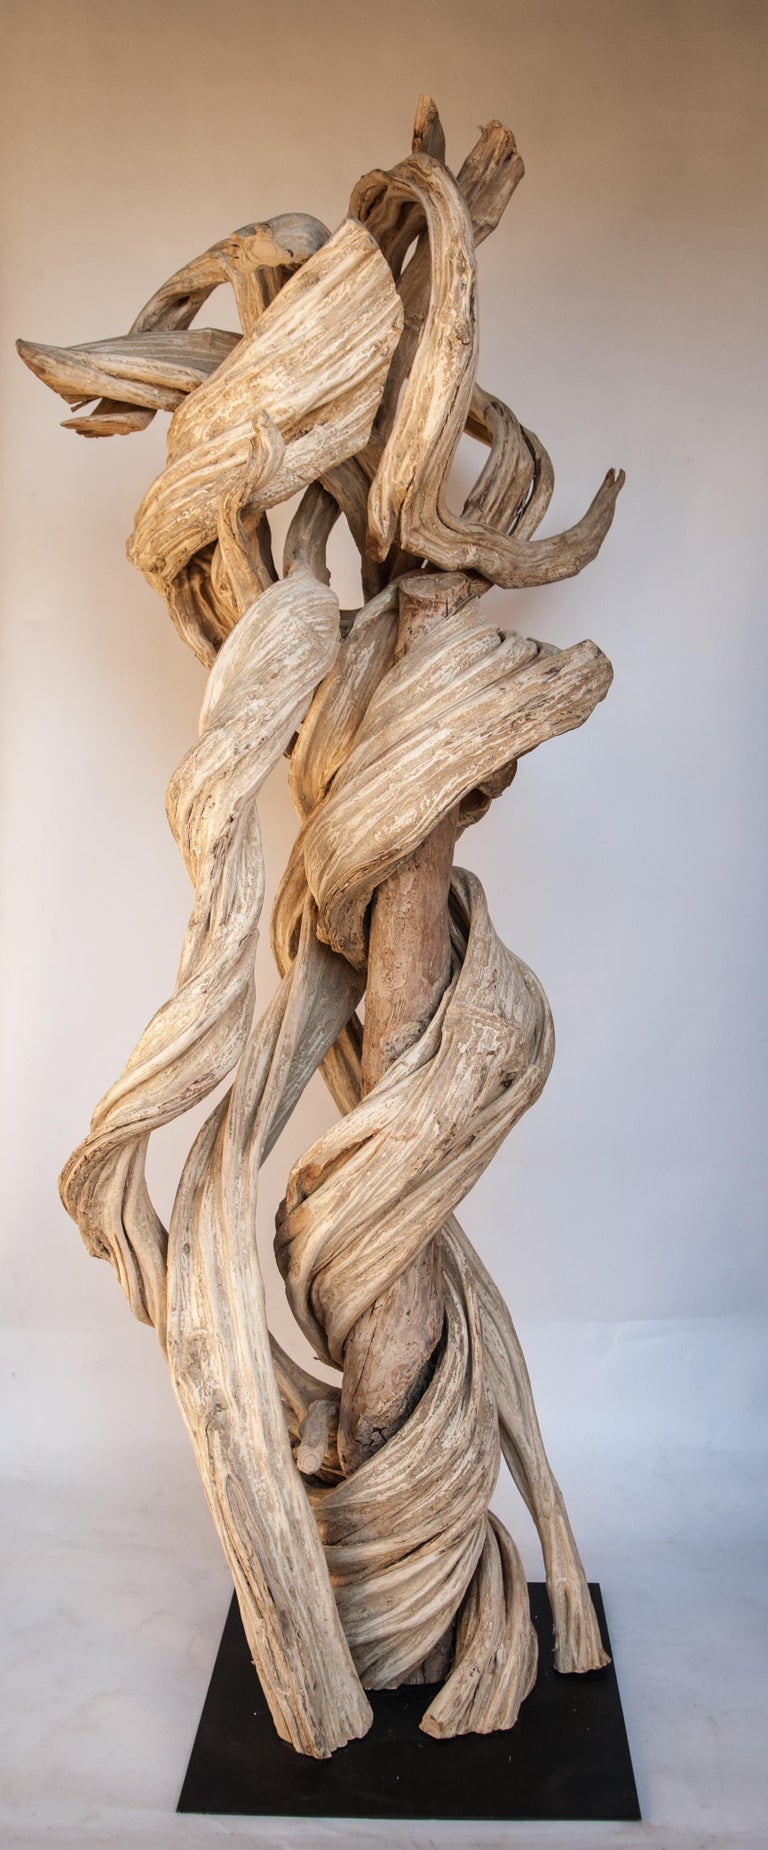 Liana Vine sculpture on a metal stand. 76 inches tall from Thailand. Offered by Bruce Hughes. This fabulously intertwined liana vine was gathered from the forests of eastern Thailand, selected for its beautiful form. It was cleaned and bleached